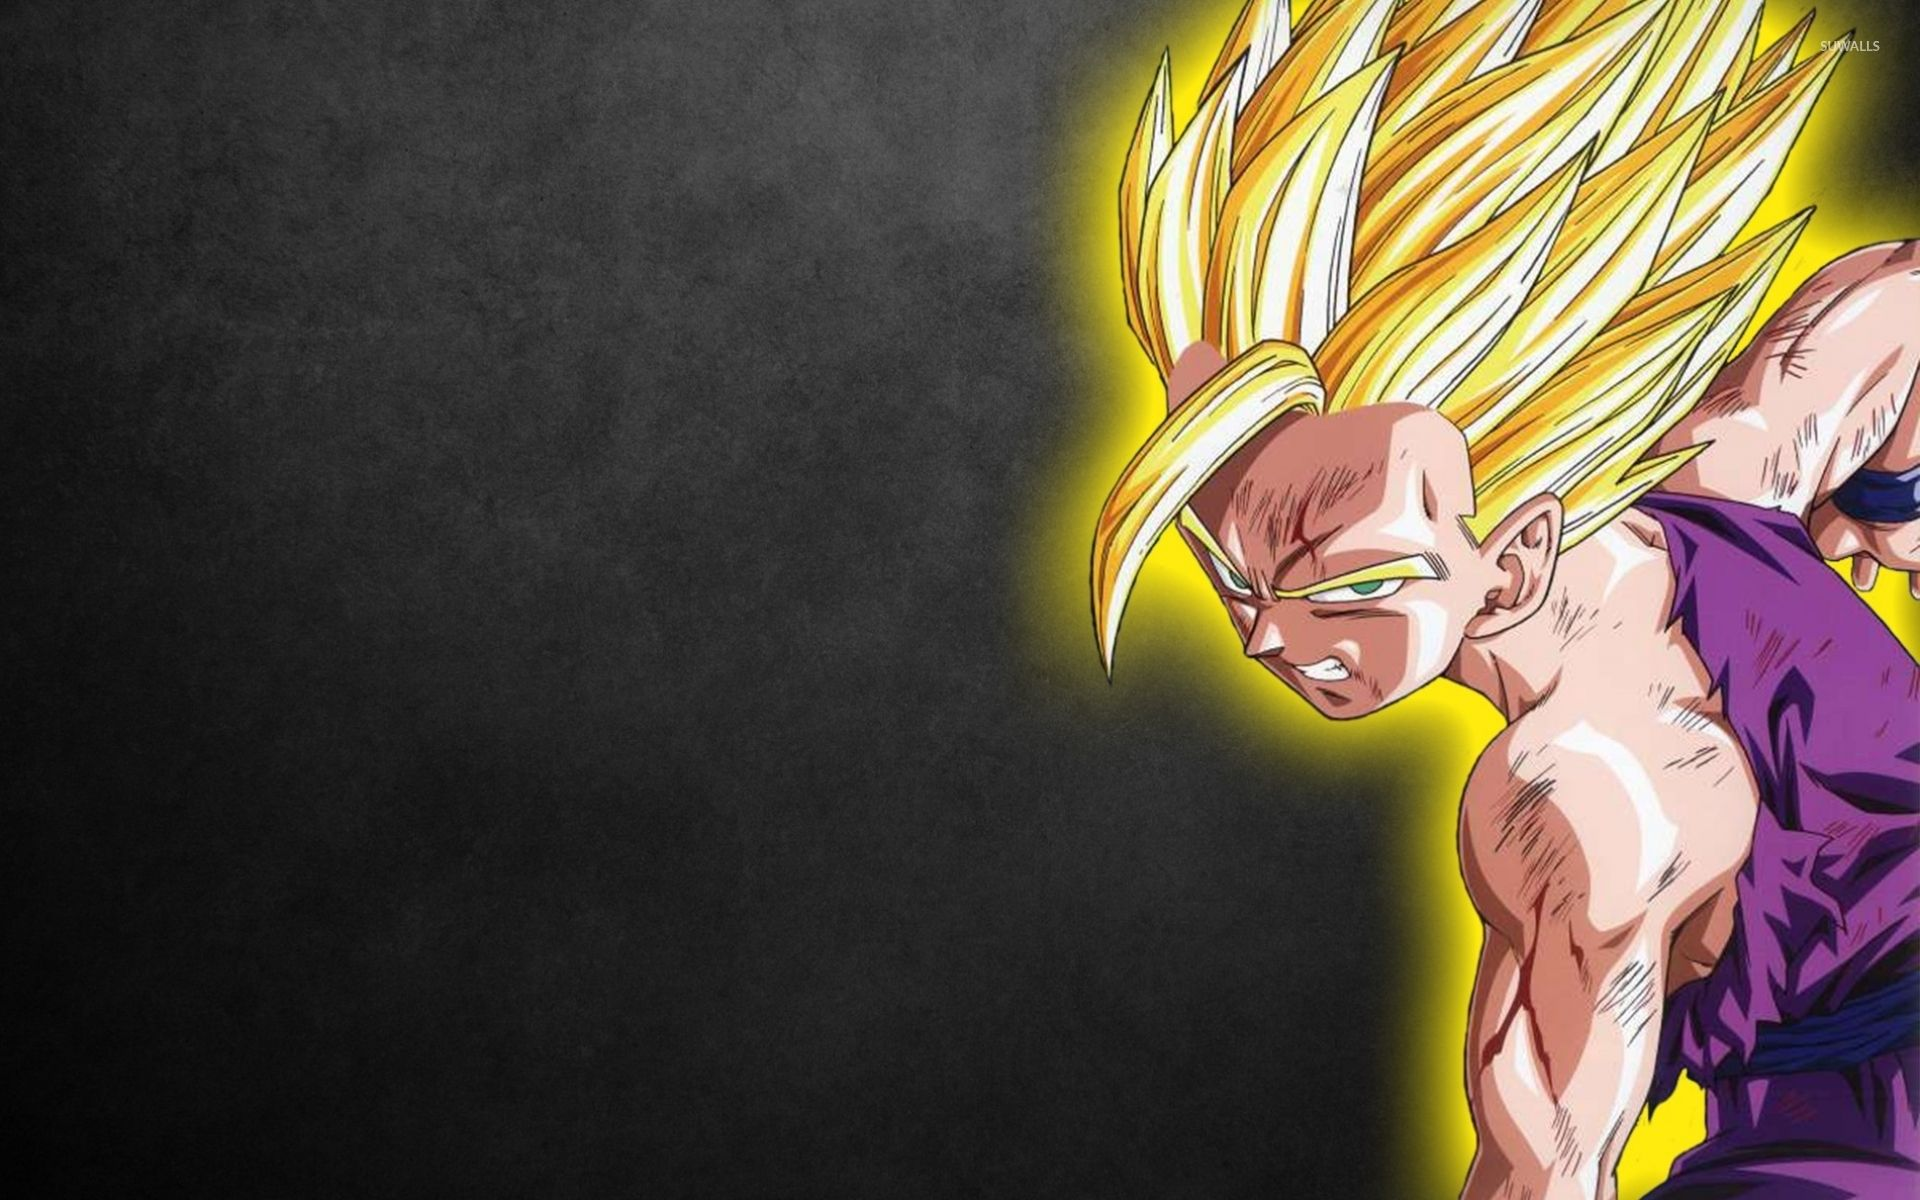 Desktop of Dragon Ball Z Wallpapers for free